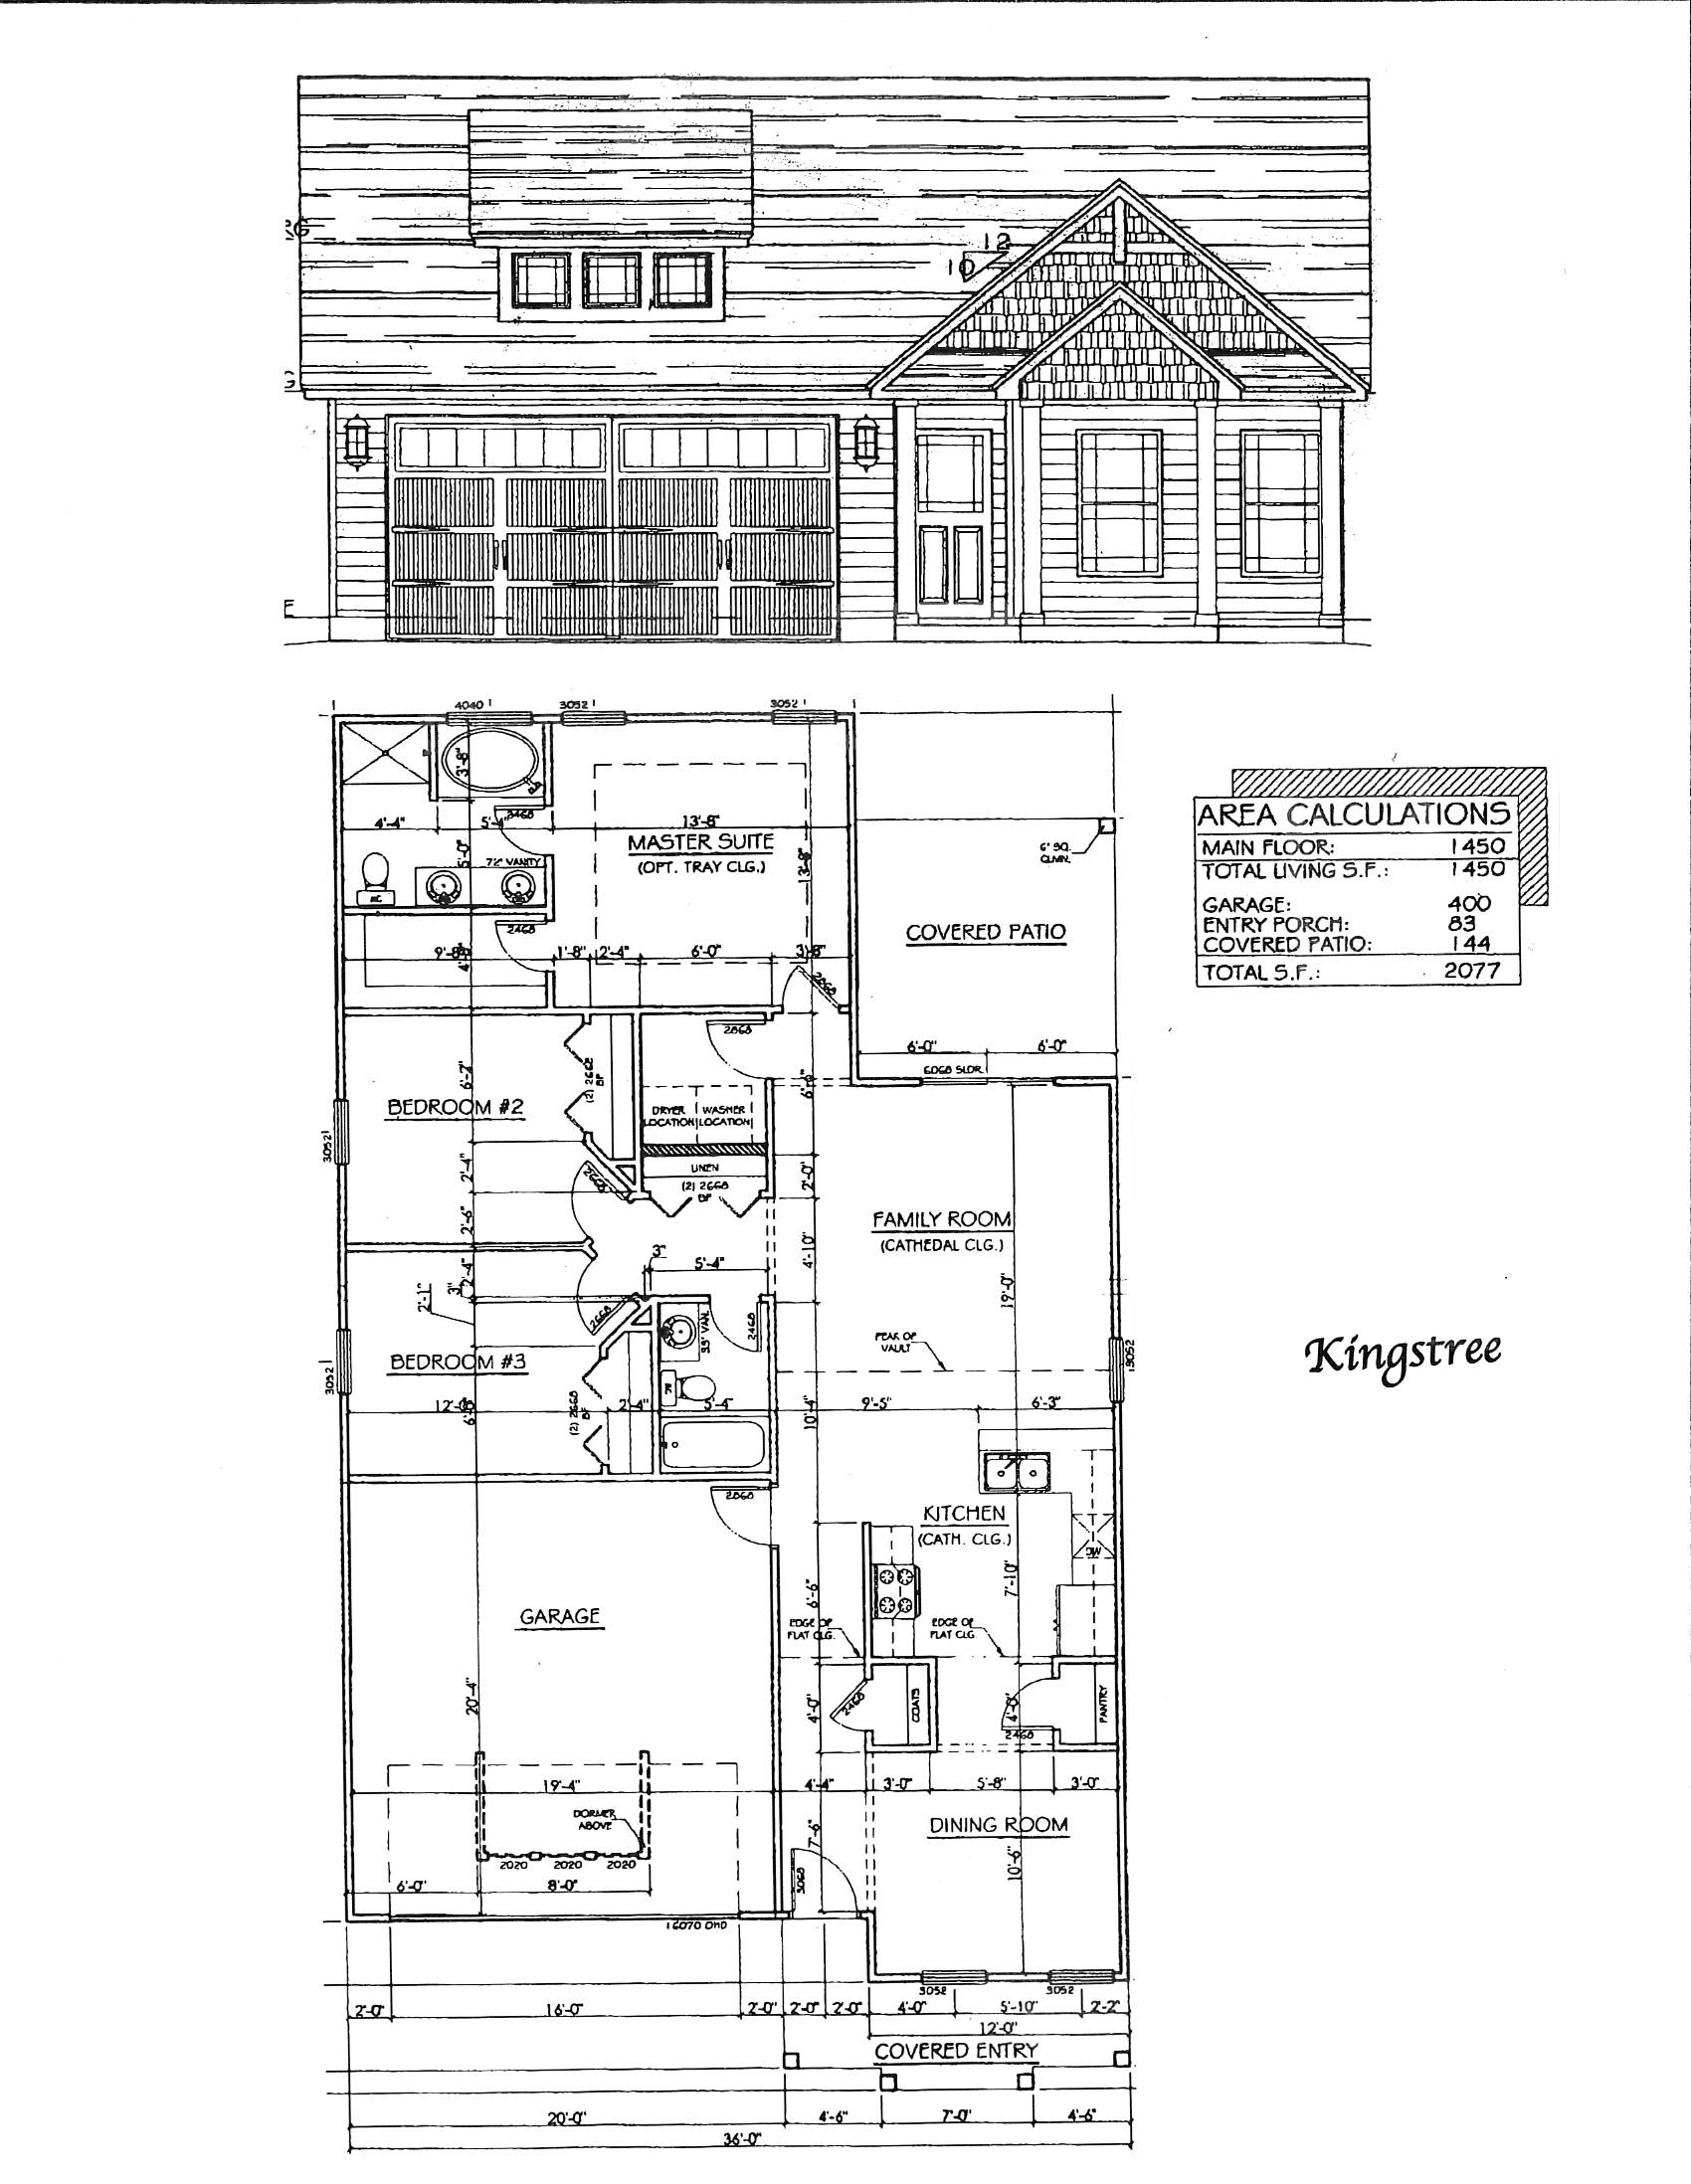 kingstree floorplan